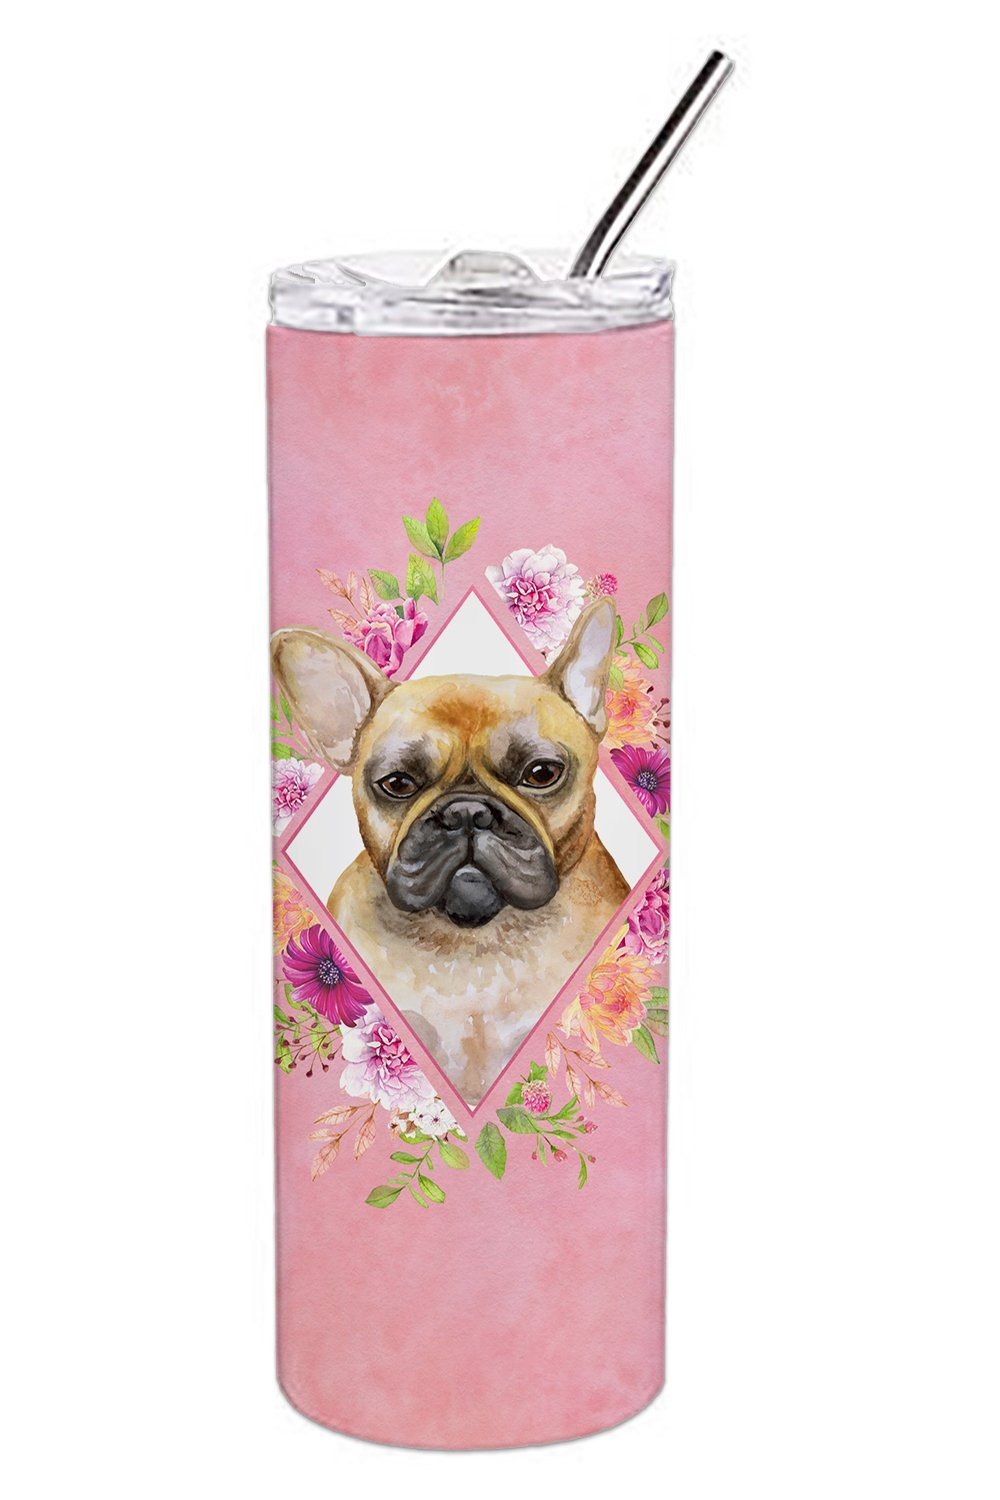 Fawn French Bulldog Pink Flowers Double Walled Stainless Steel 20 oz Skinny Tumbler CK4144TBL20 by Caroline's Treasures